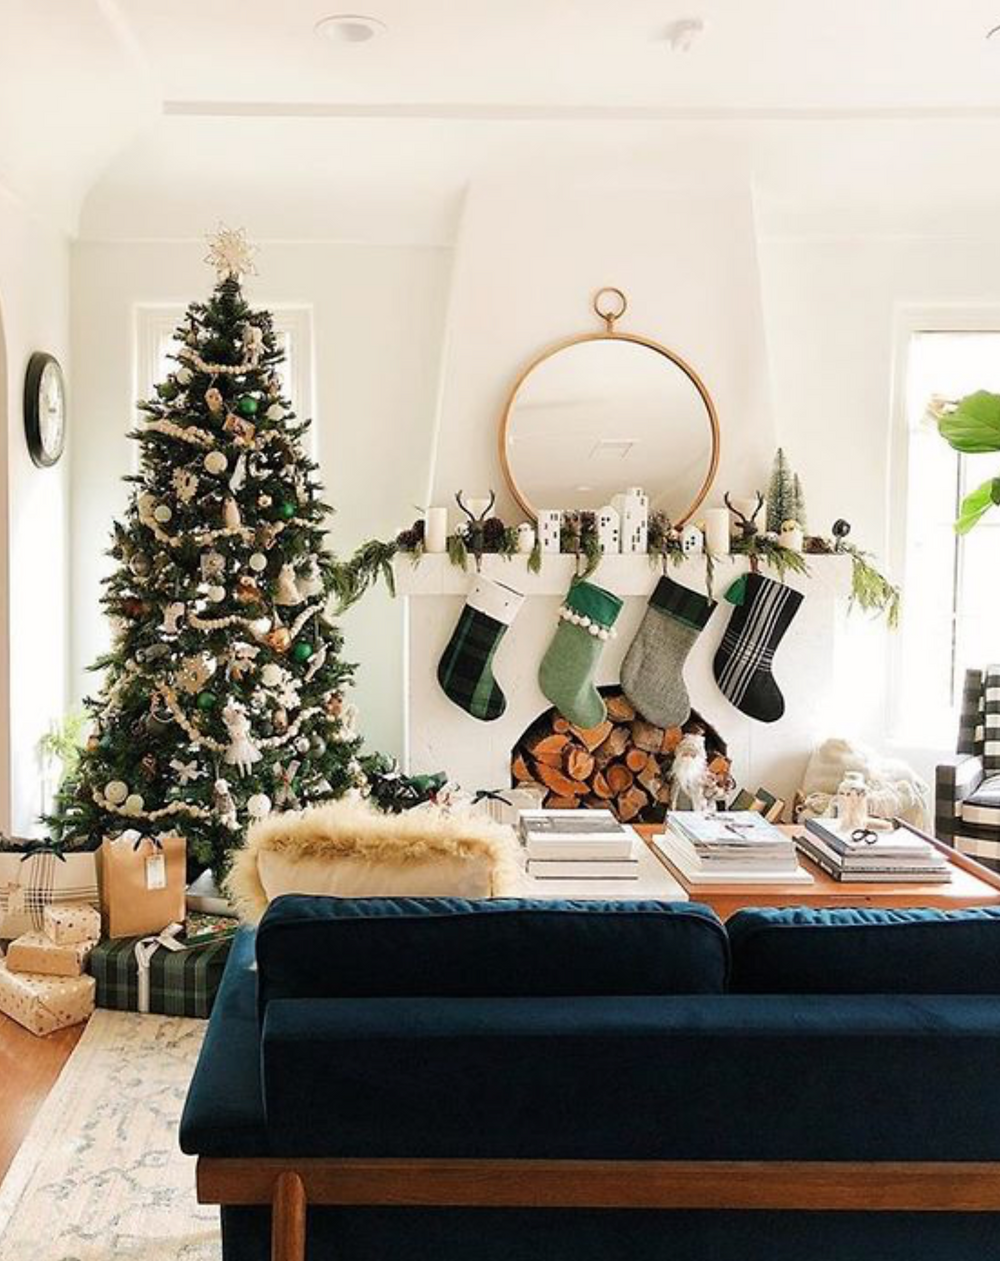 A white Christmas holiday fireplace with a mantel decorated with greenery, a gold mirror and green stockings for a stylish and cozy feel.